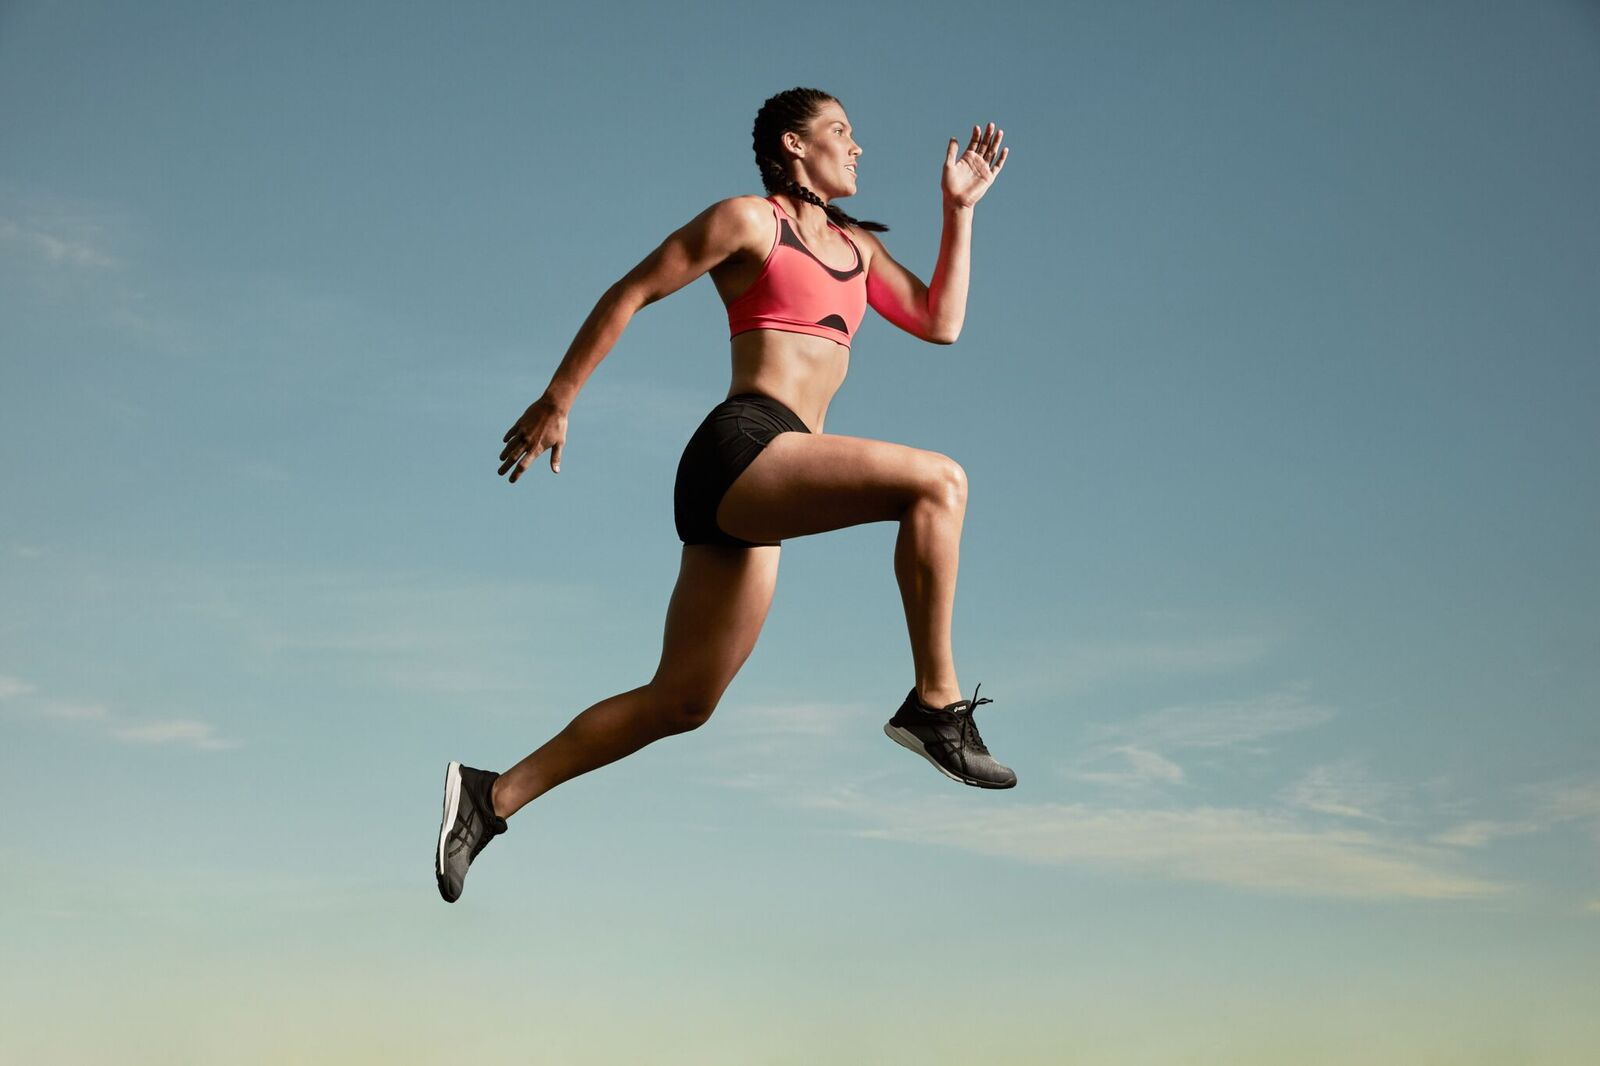 Charlotte Caslick can definitely jump higher than